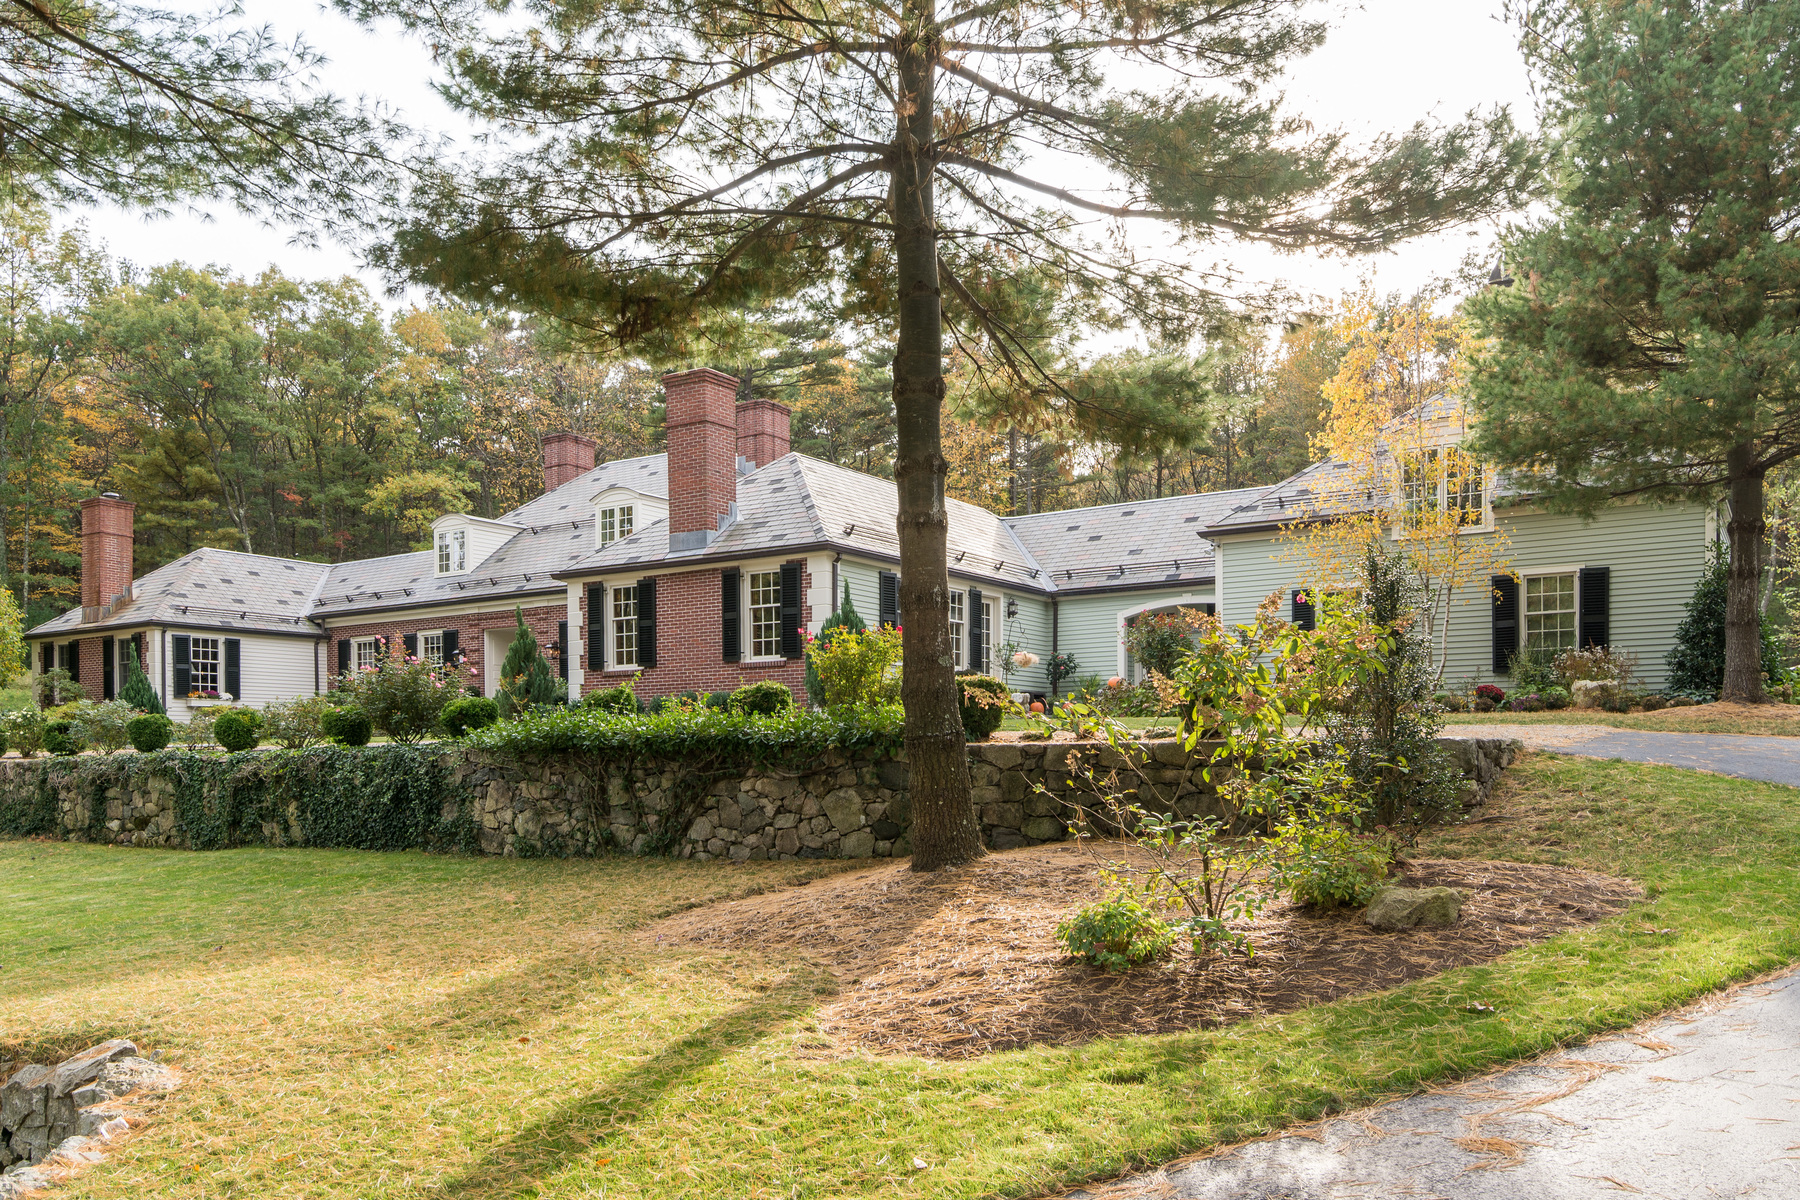 Single Family Home for Sale at Exquisite Home On Rare 3 Acres 150 Pond Road Wellesley, 02482 United States